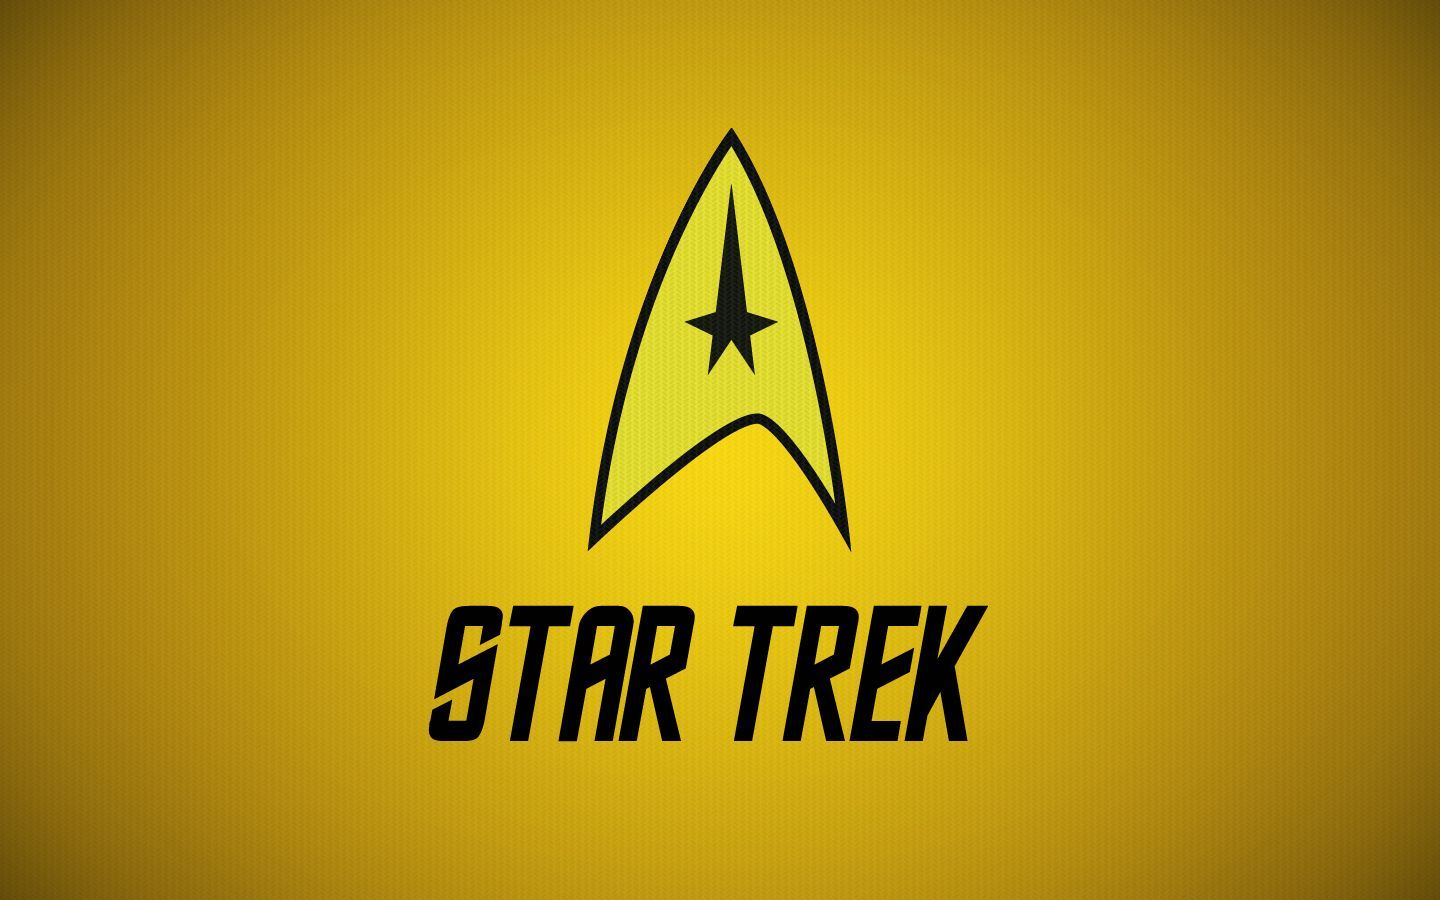 Star Trek Logo - All About Star Trek - thescriptblog.com